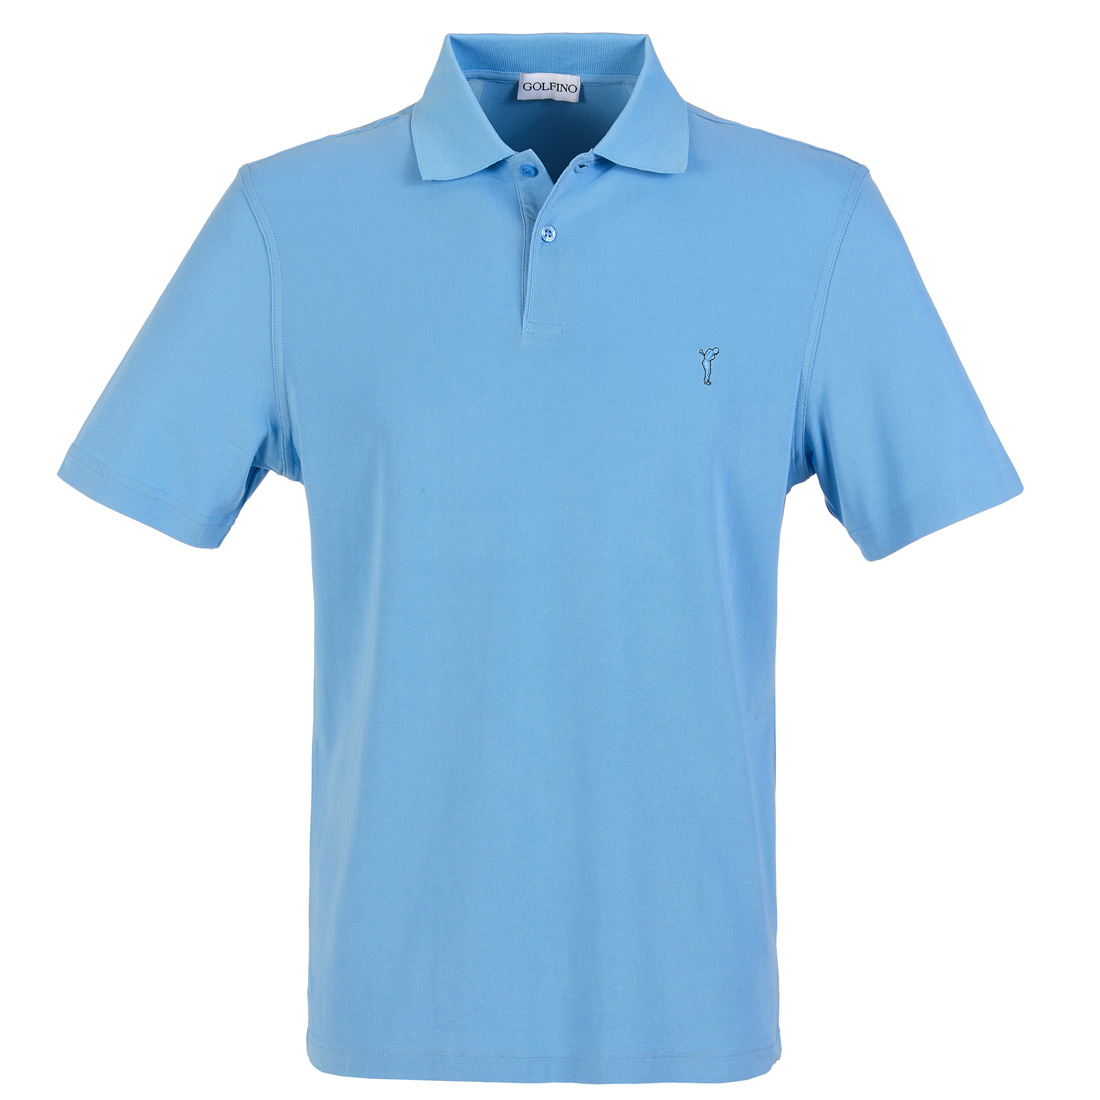 Golf Performance Wear men's short-sleeve polo with Moisture Management